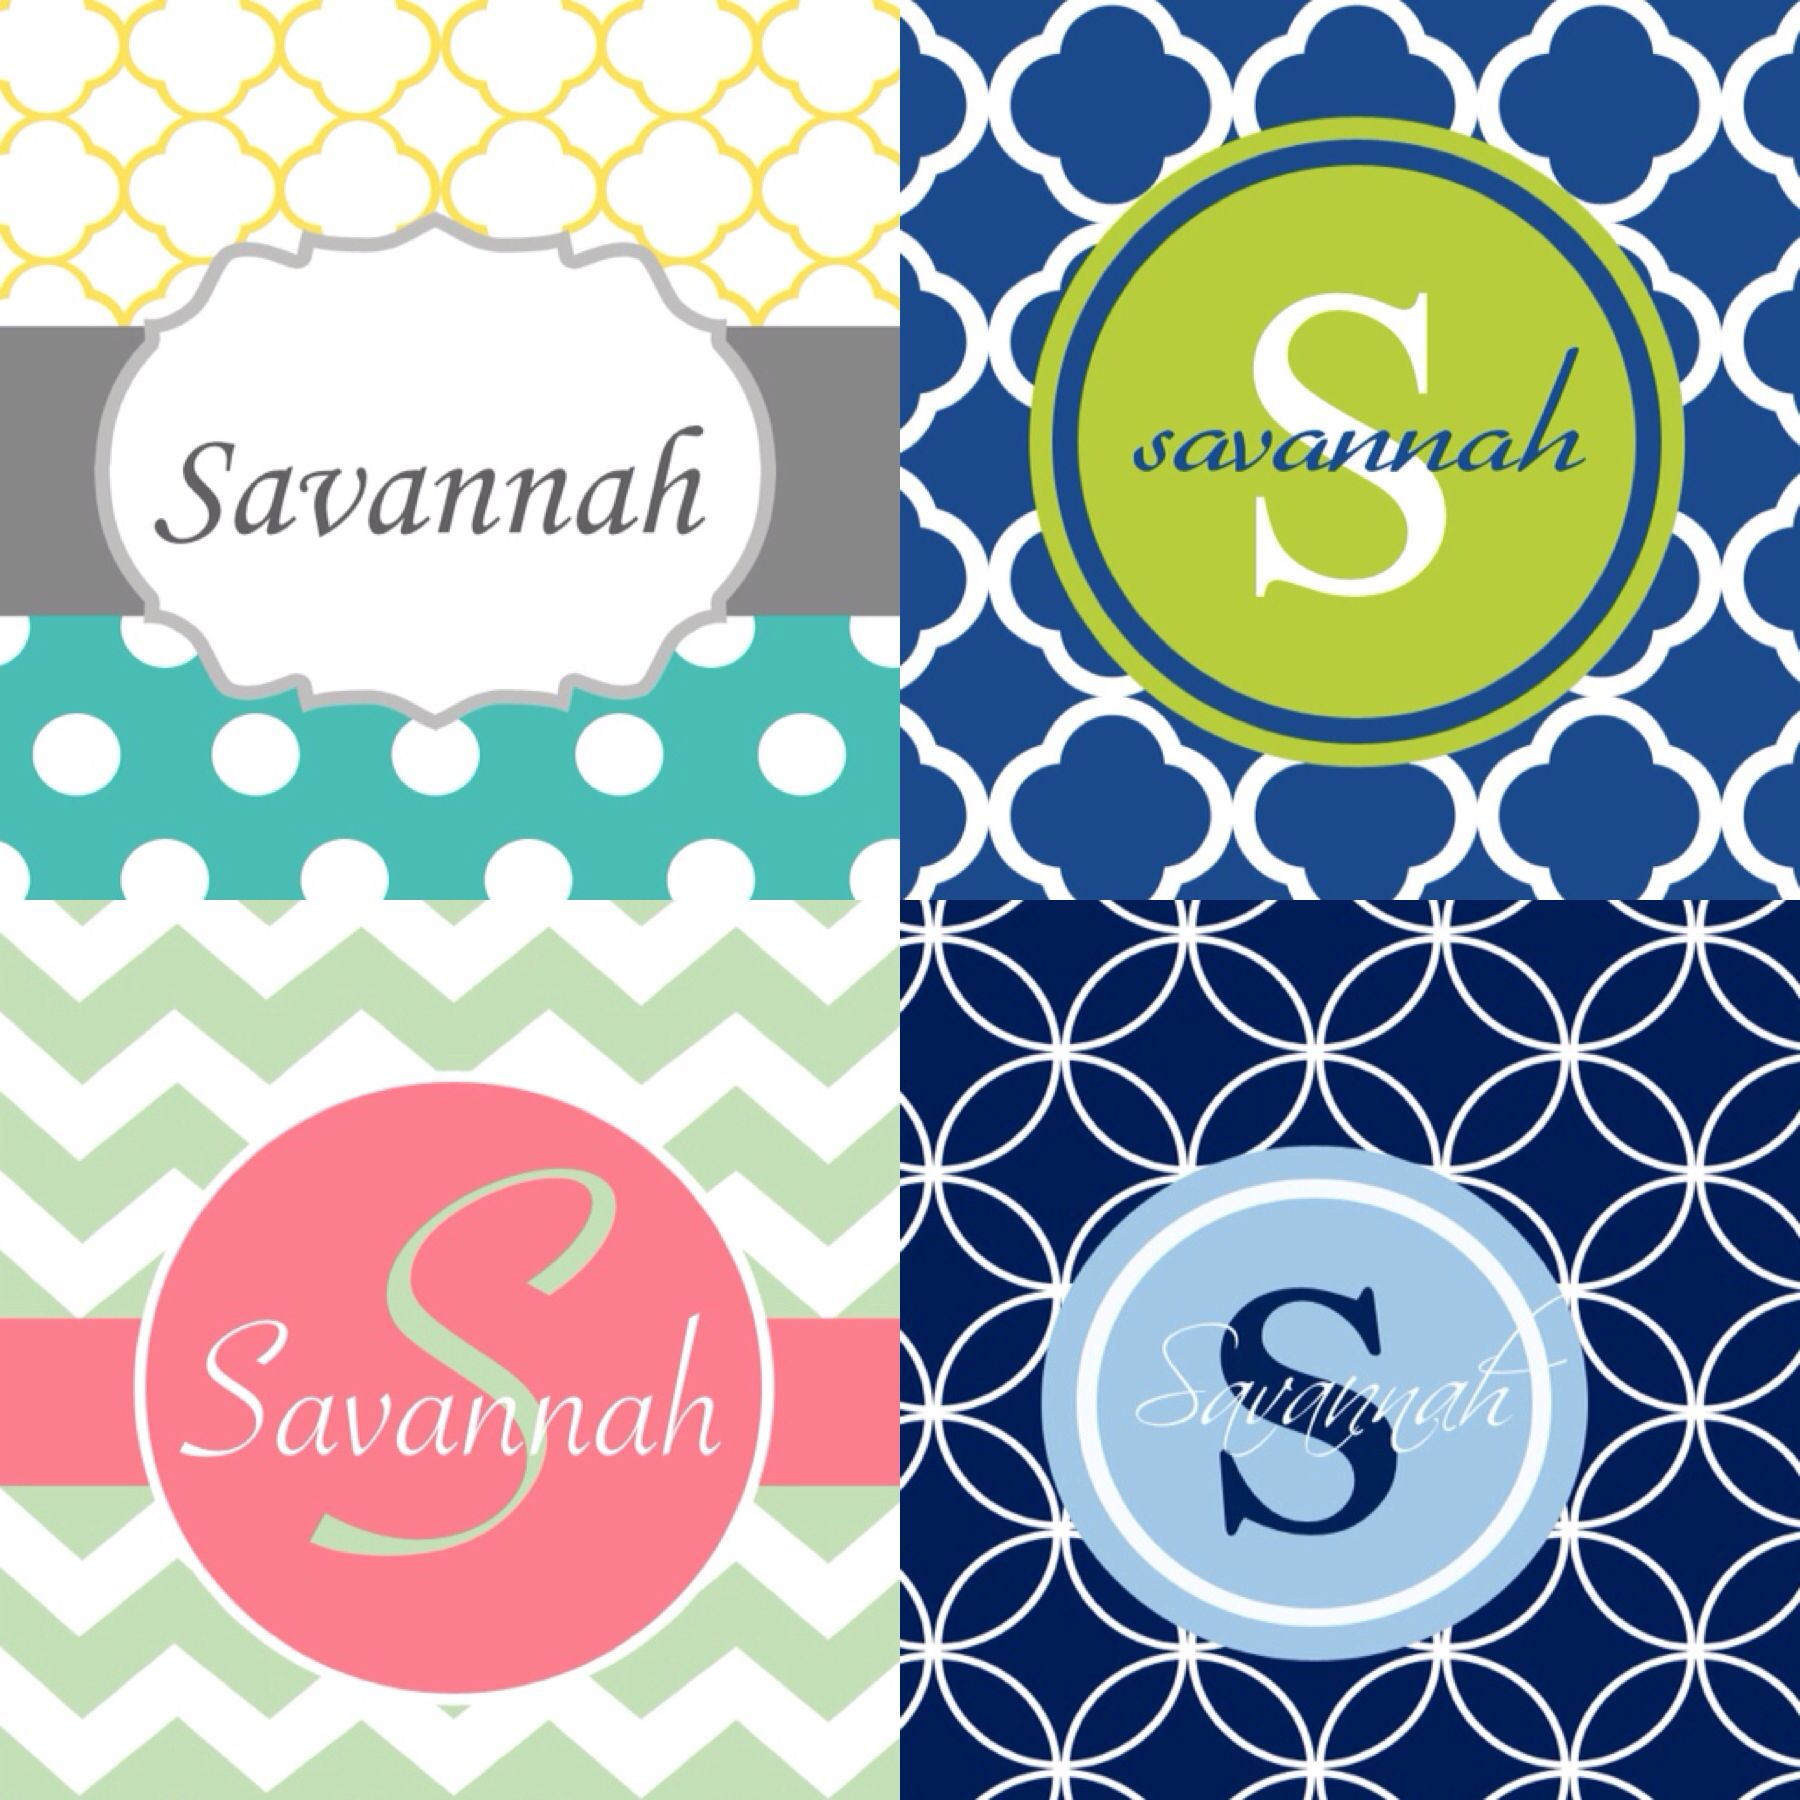 Elegant Monograms App Creates Free Monogram Wallpapers For Your IPhone!